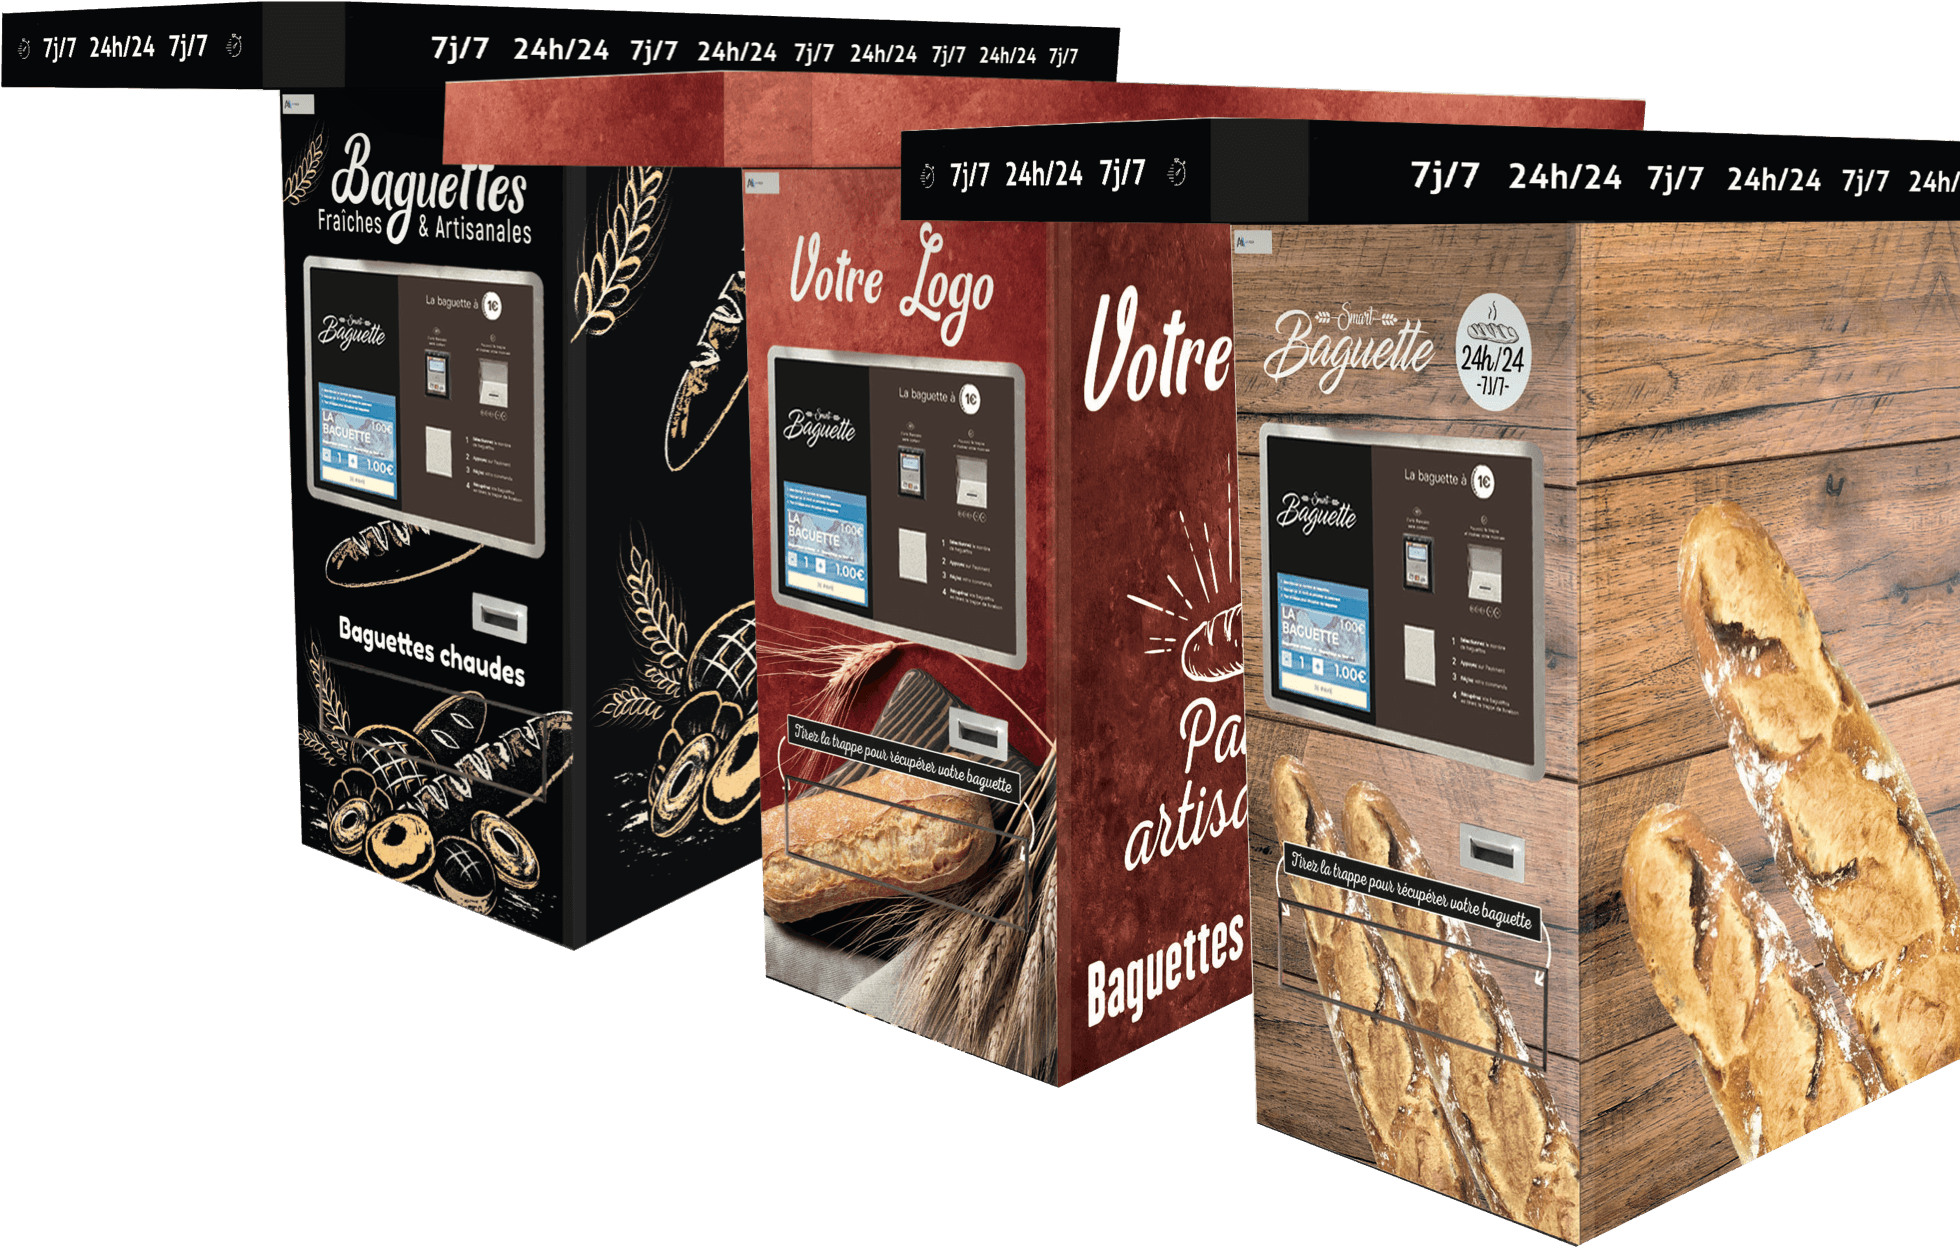 visuel de point de vente de Smart Baguette